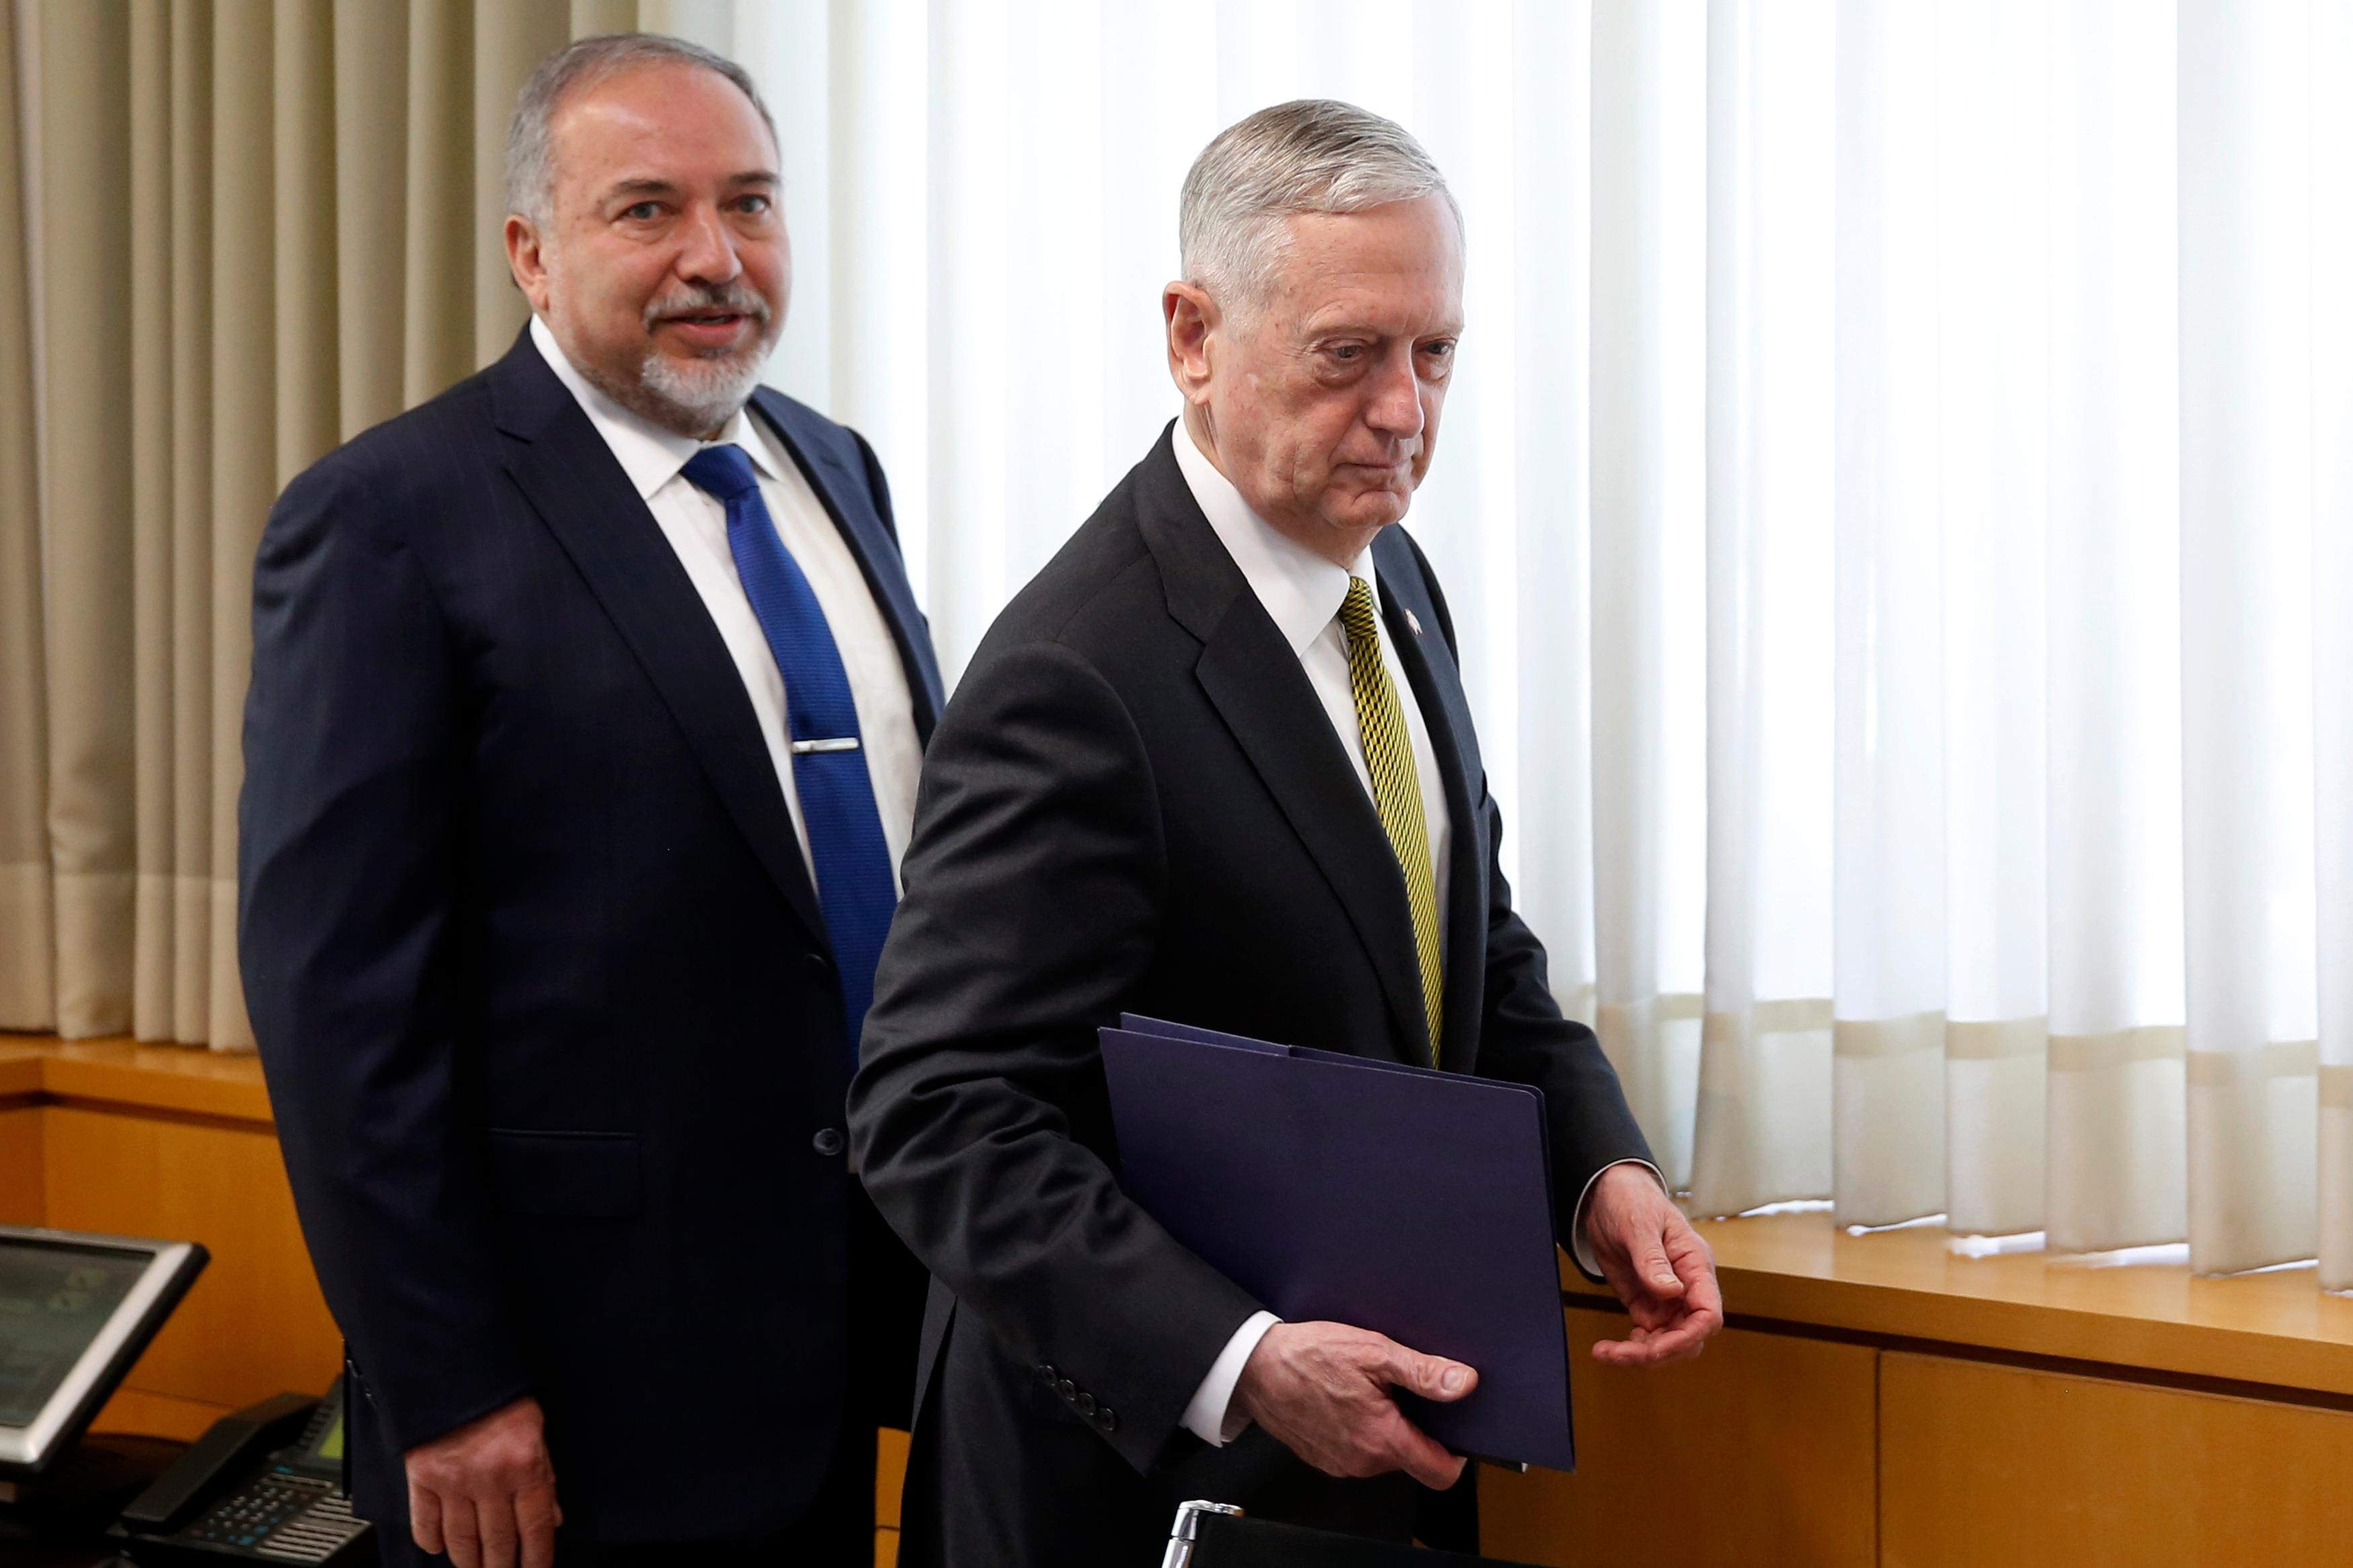 Israeli Defense Minister Avigdor Lieberman, left, and U.S. Defense Secretary Jim Mattis takes seats for a meeting at the Defense Ministry in Tel Aviv, Israel, Friday, April 21, 2017. (Jonathan Ernst/Pool Photo via AP)